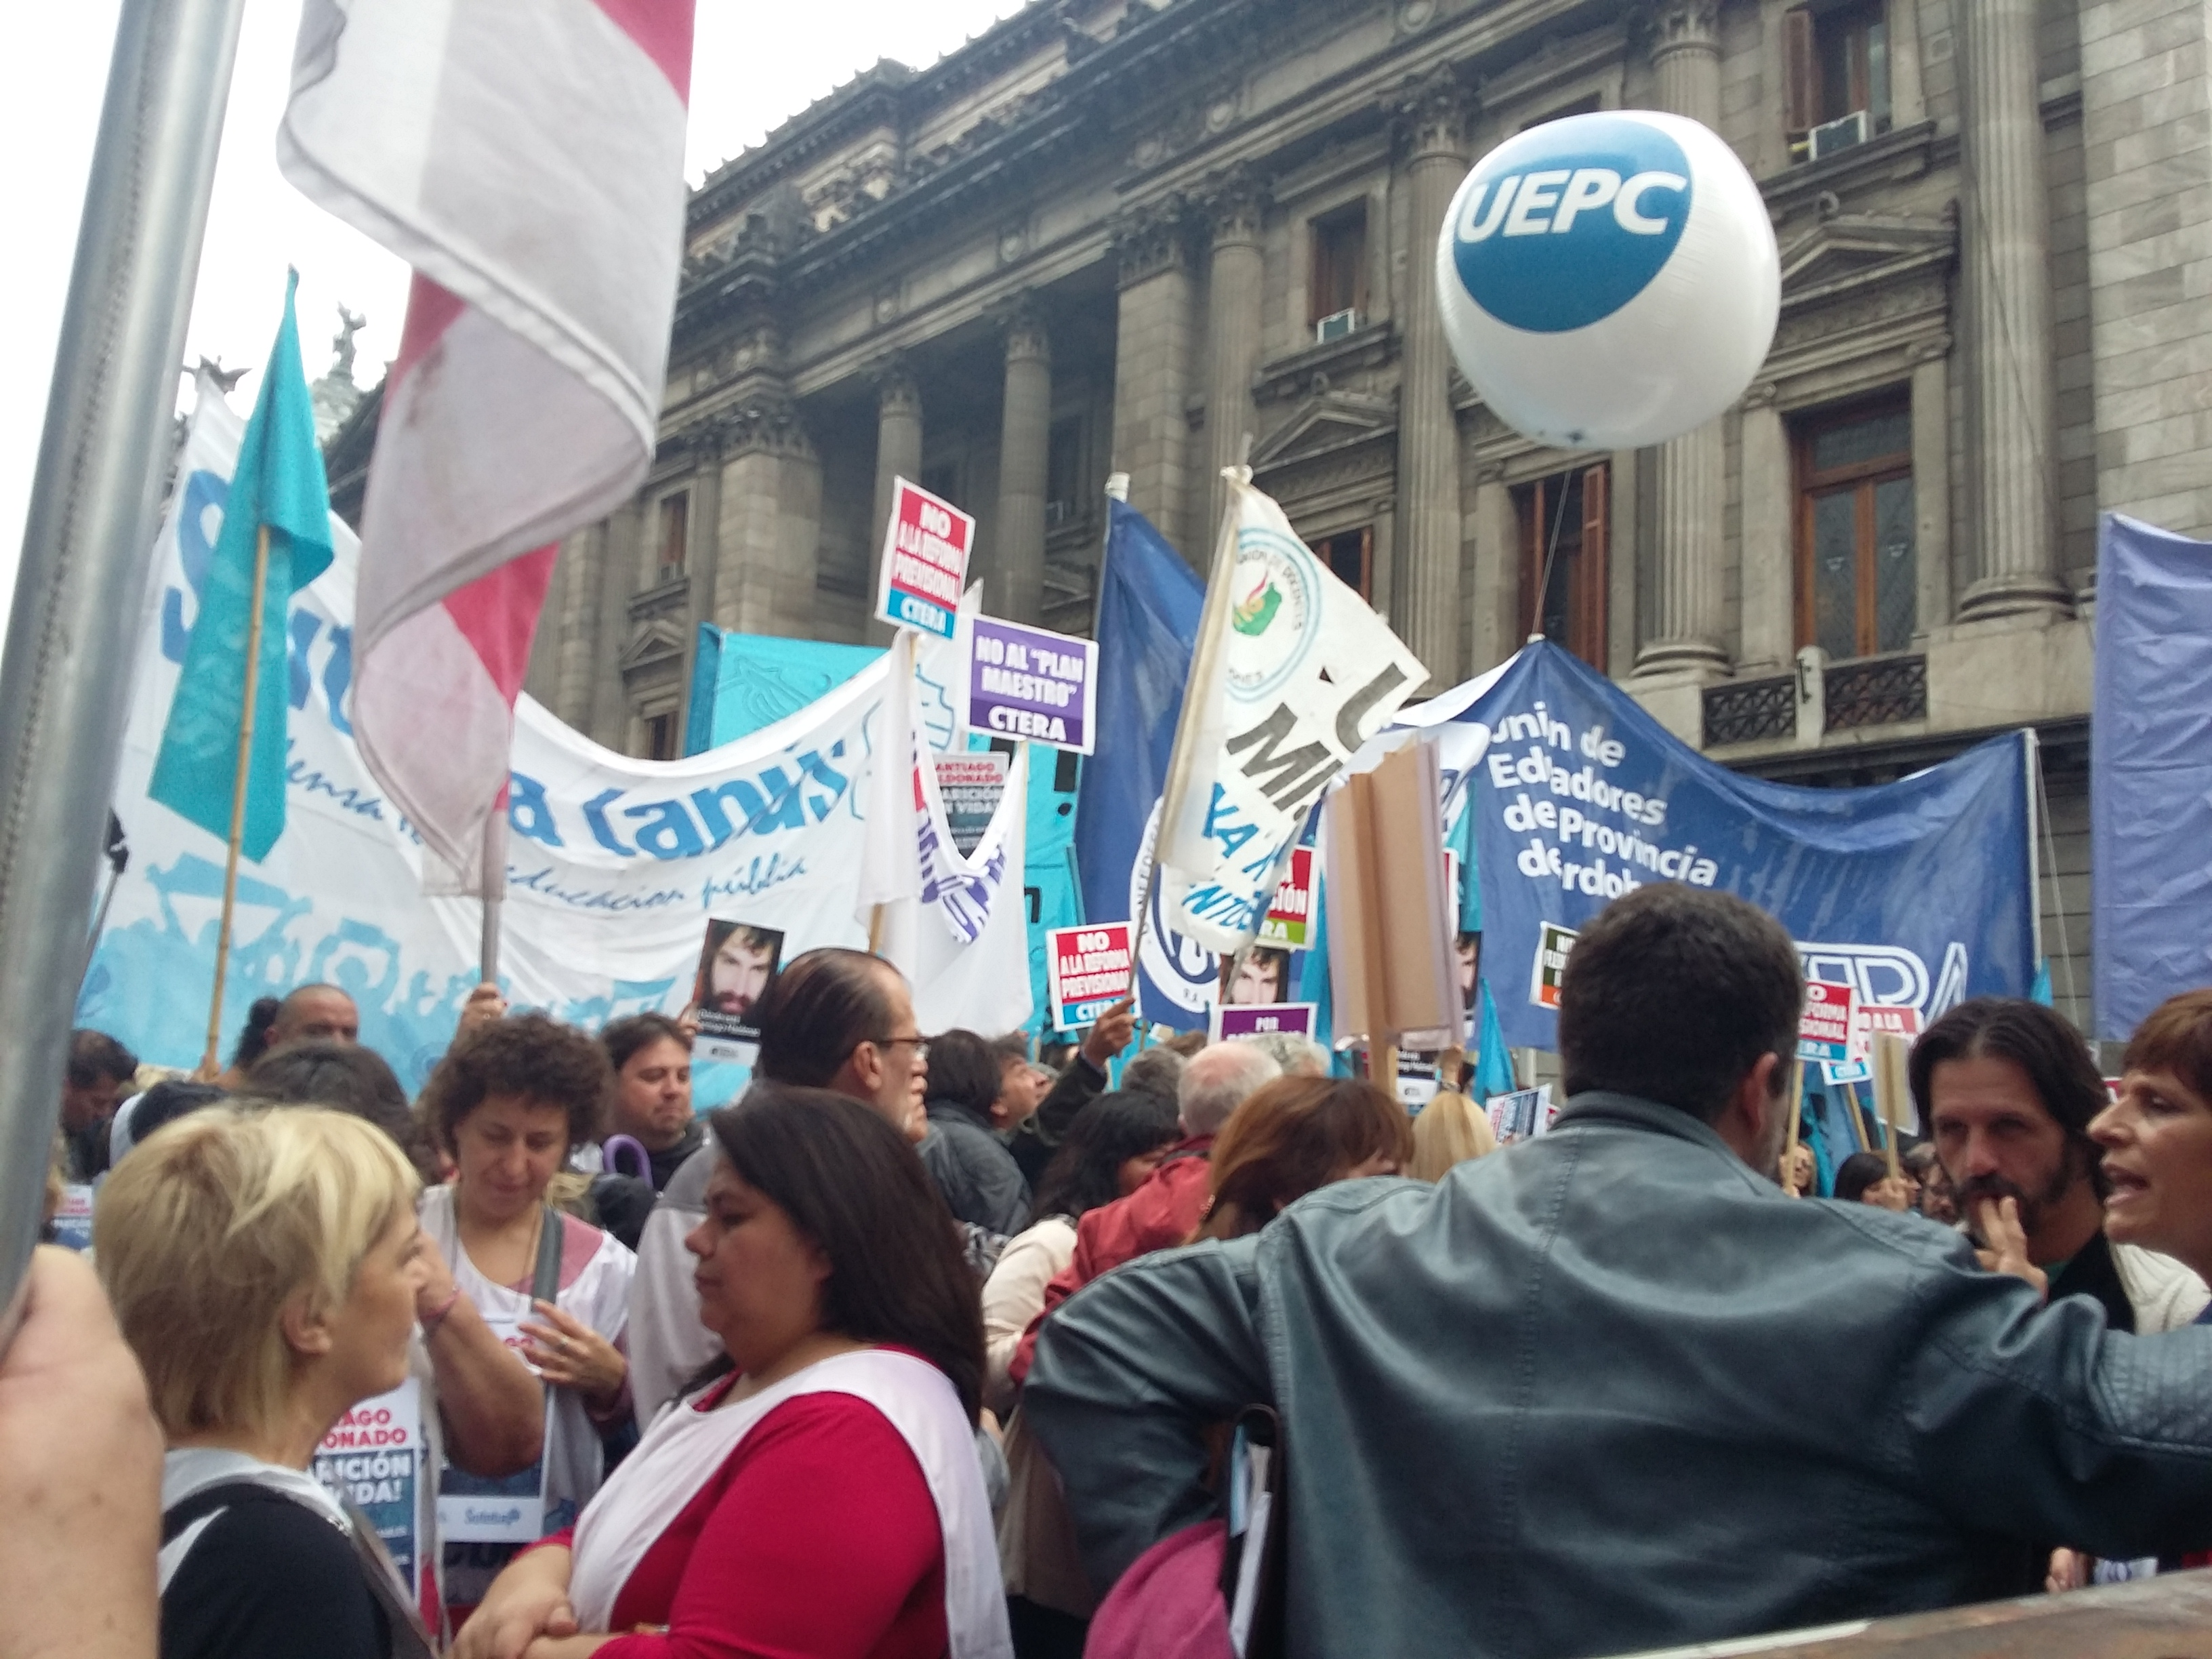 Marcha docentes